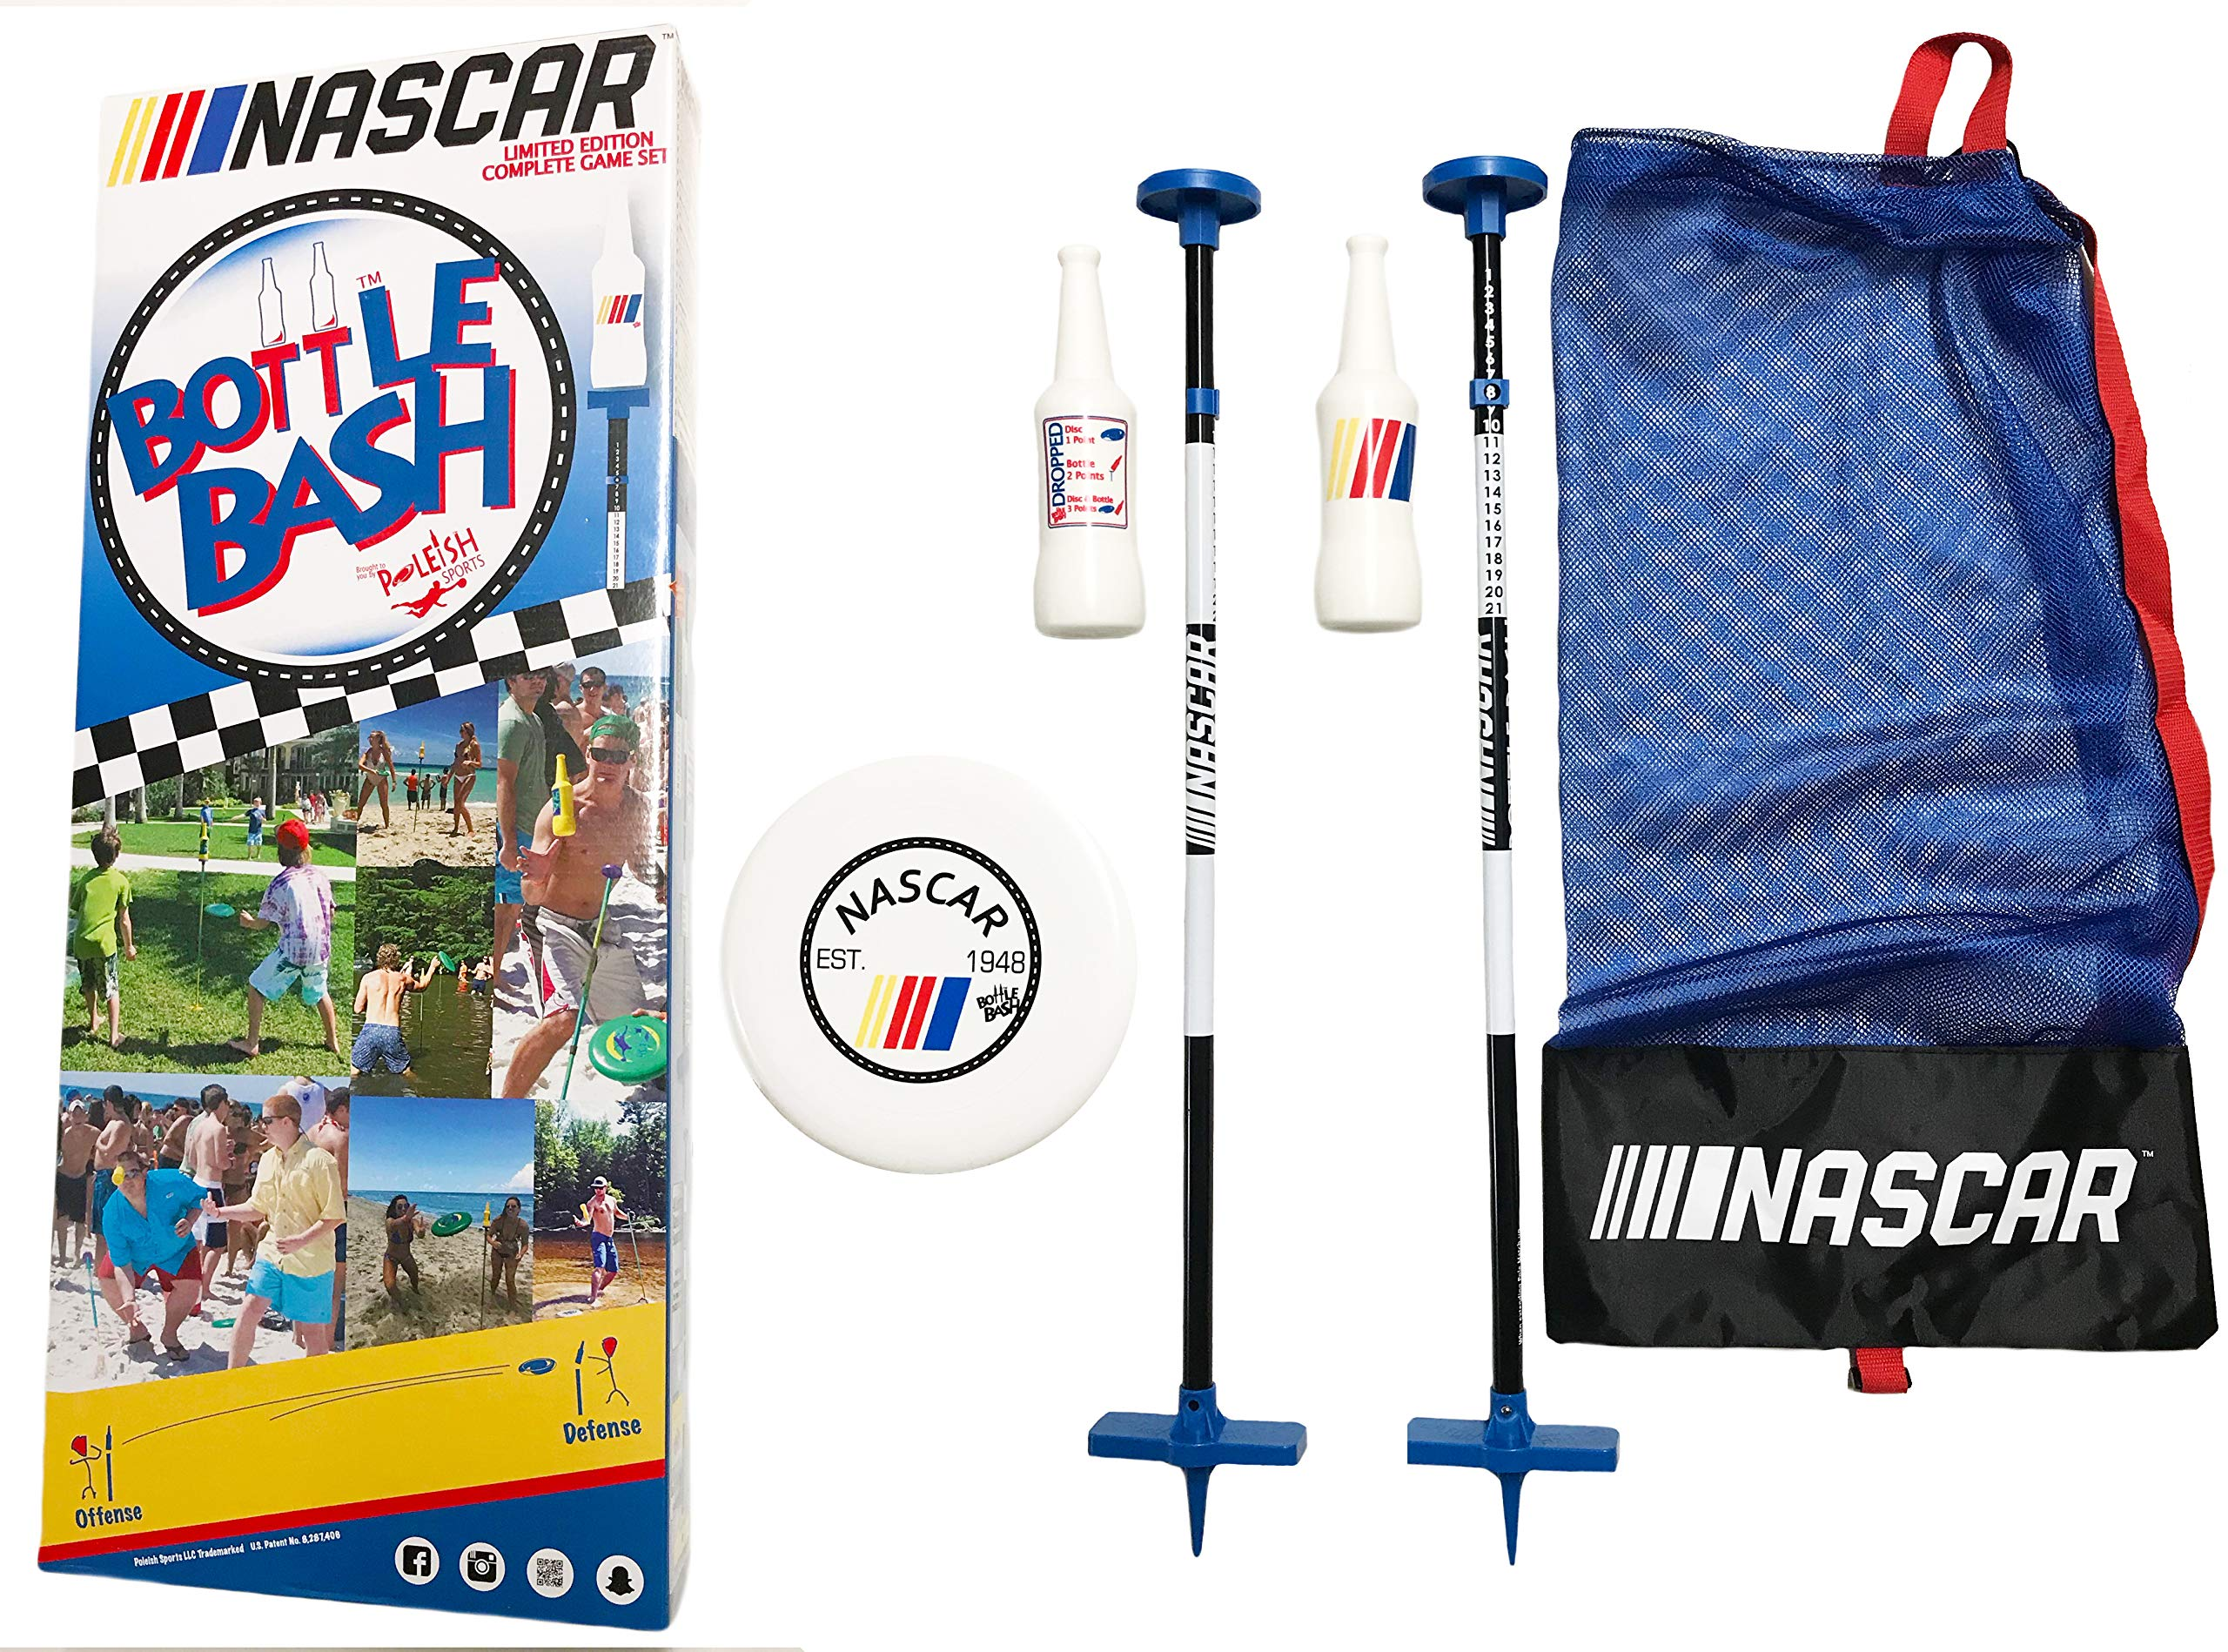 Bottle Bash NASCAR Game Set with Soft Surface Spike (Polish Horseshoes, Beersbee) by Poleish Sports